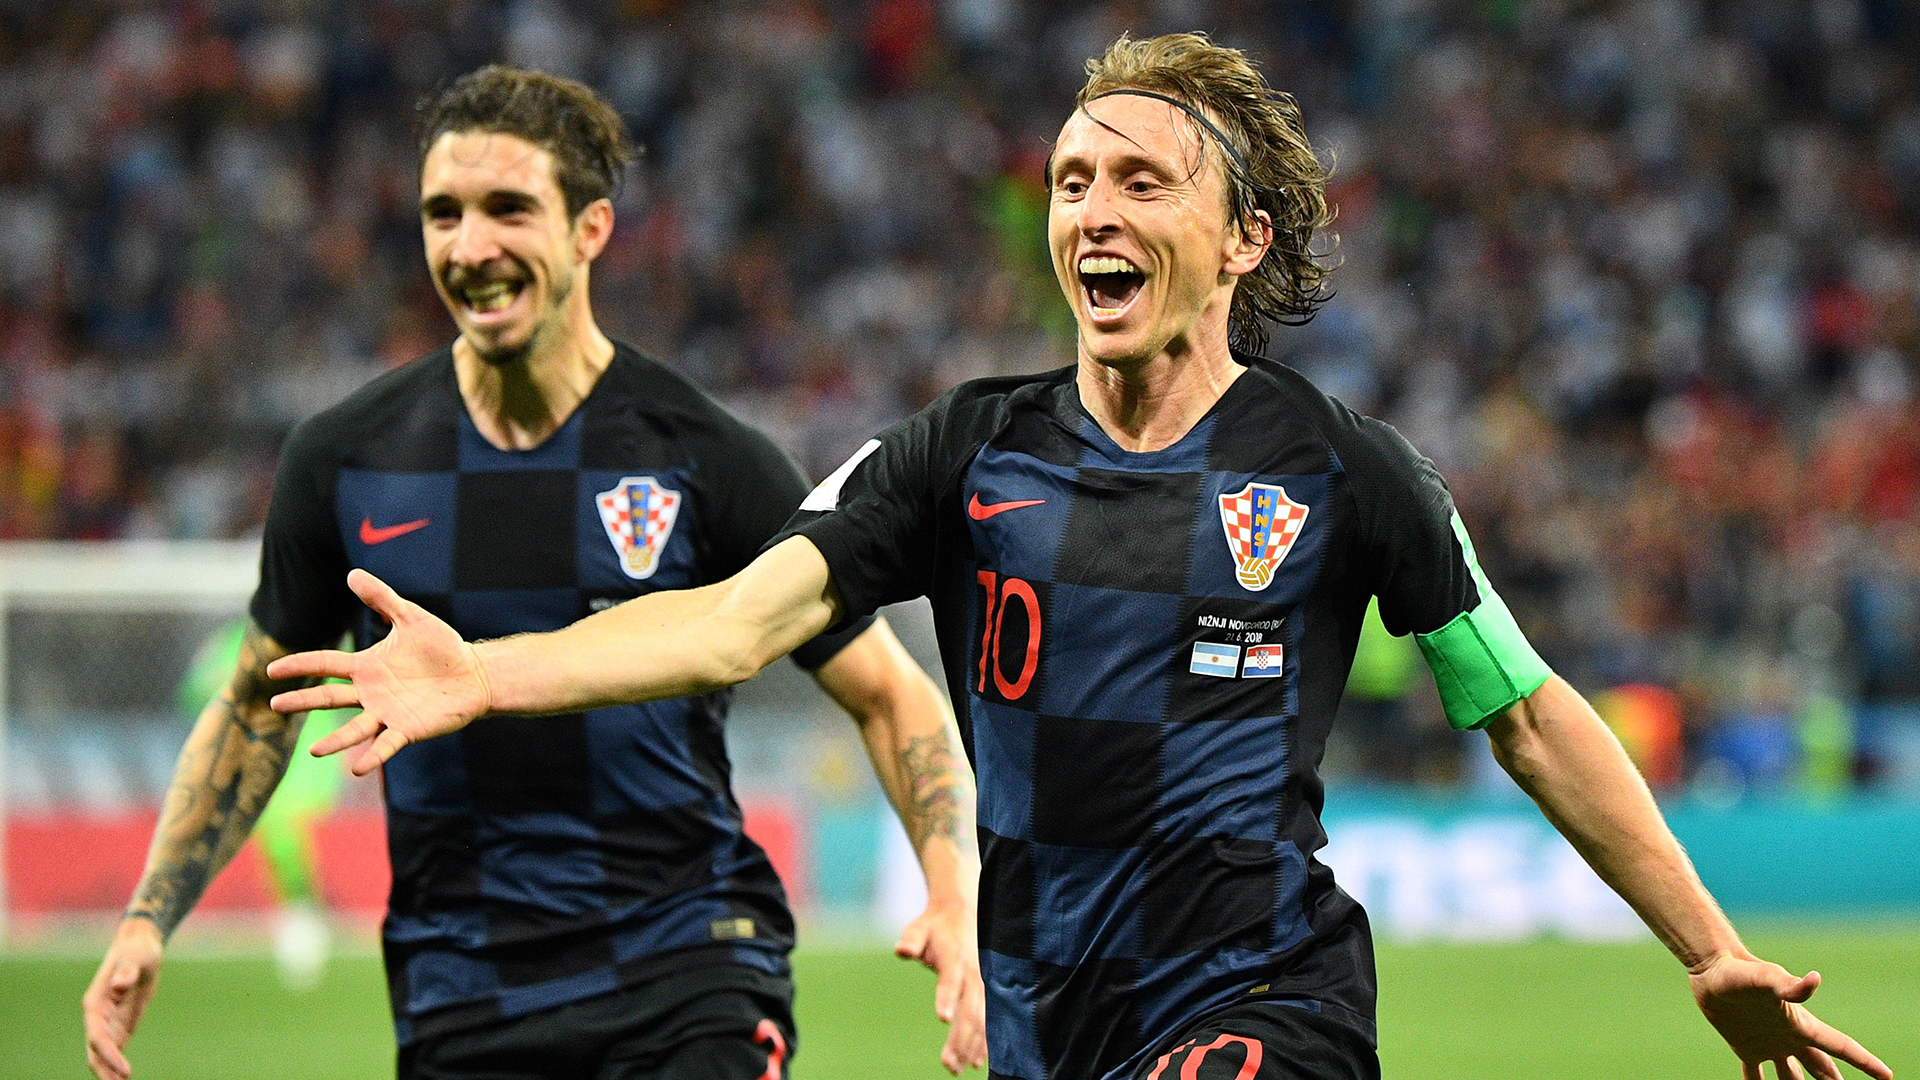 Modric leads revamped Croatia against Iceland